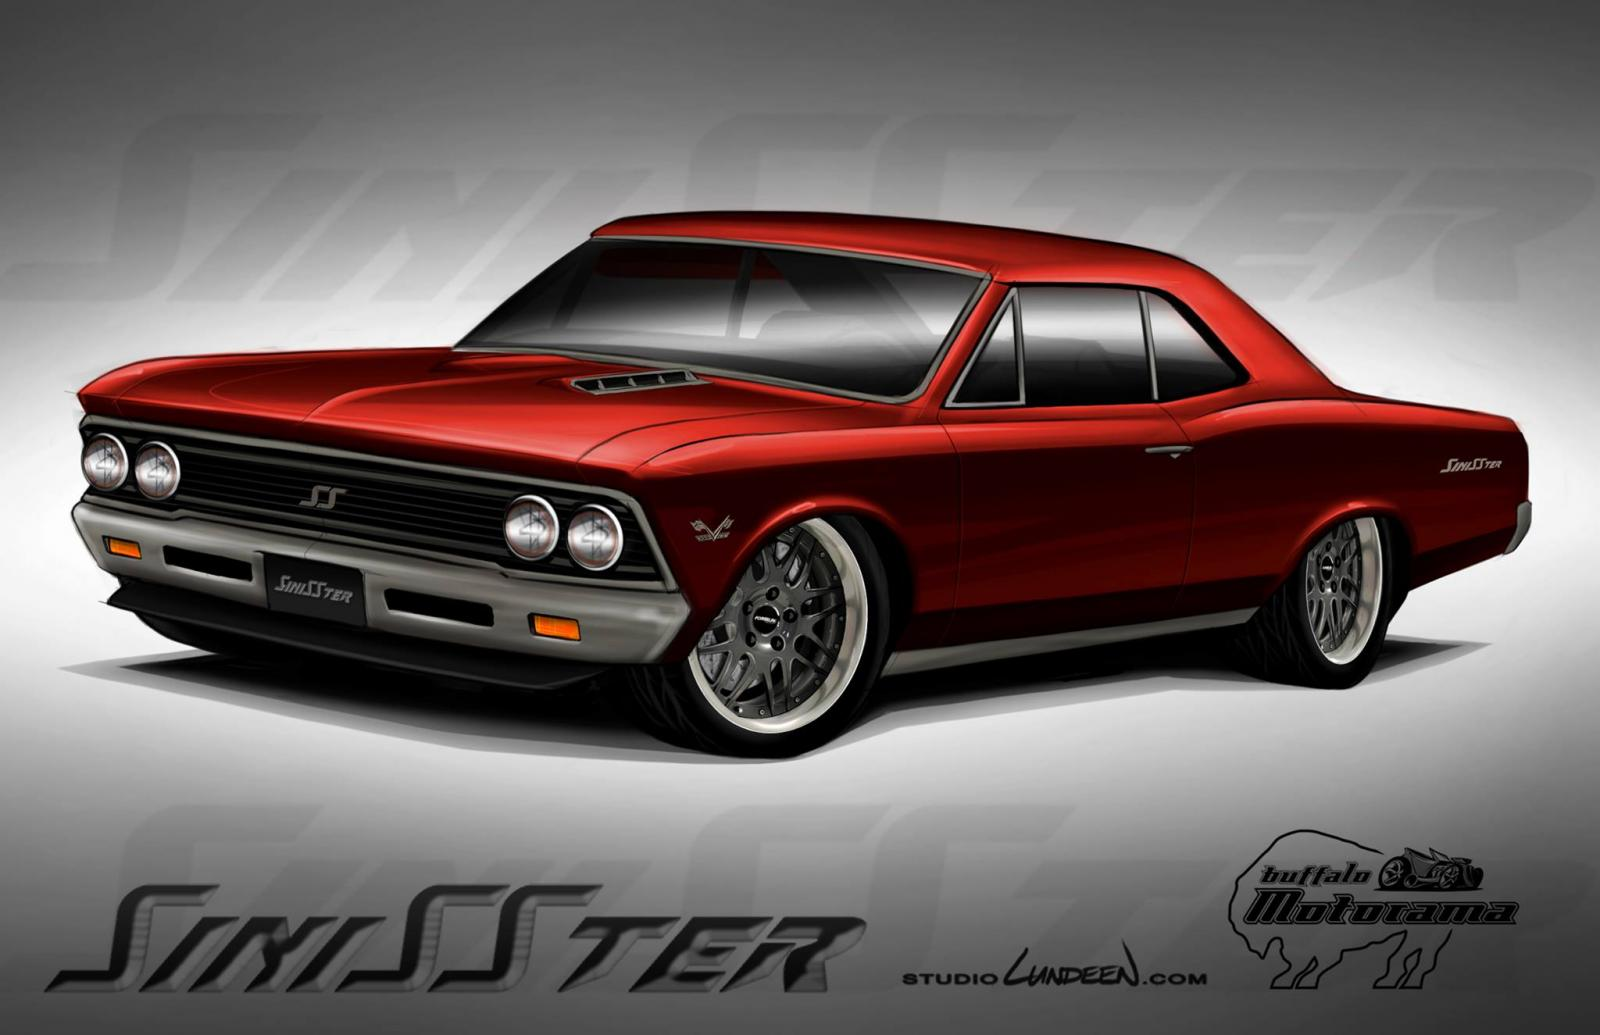 1966 Chevelle Pro Touring Project Sinisster Page 2